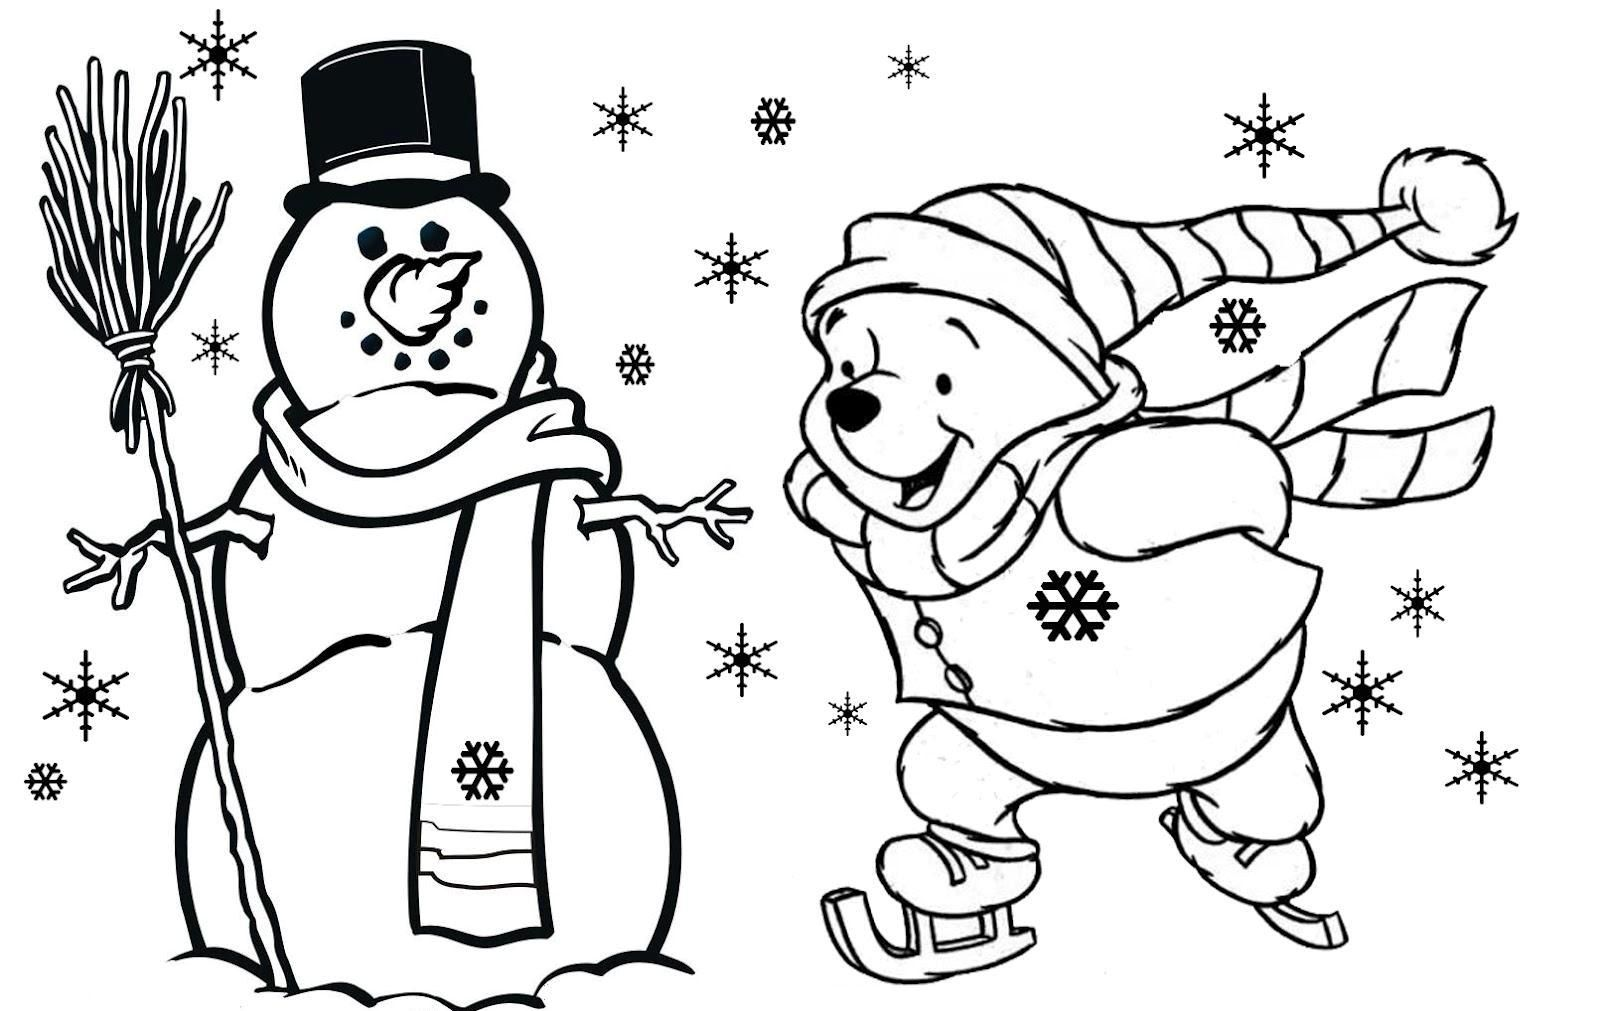 Online coloring pages for children to print - Christmas Coloring Pages To Print Free Best Quotes Wishes Ever